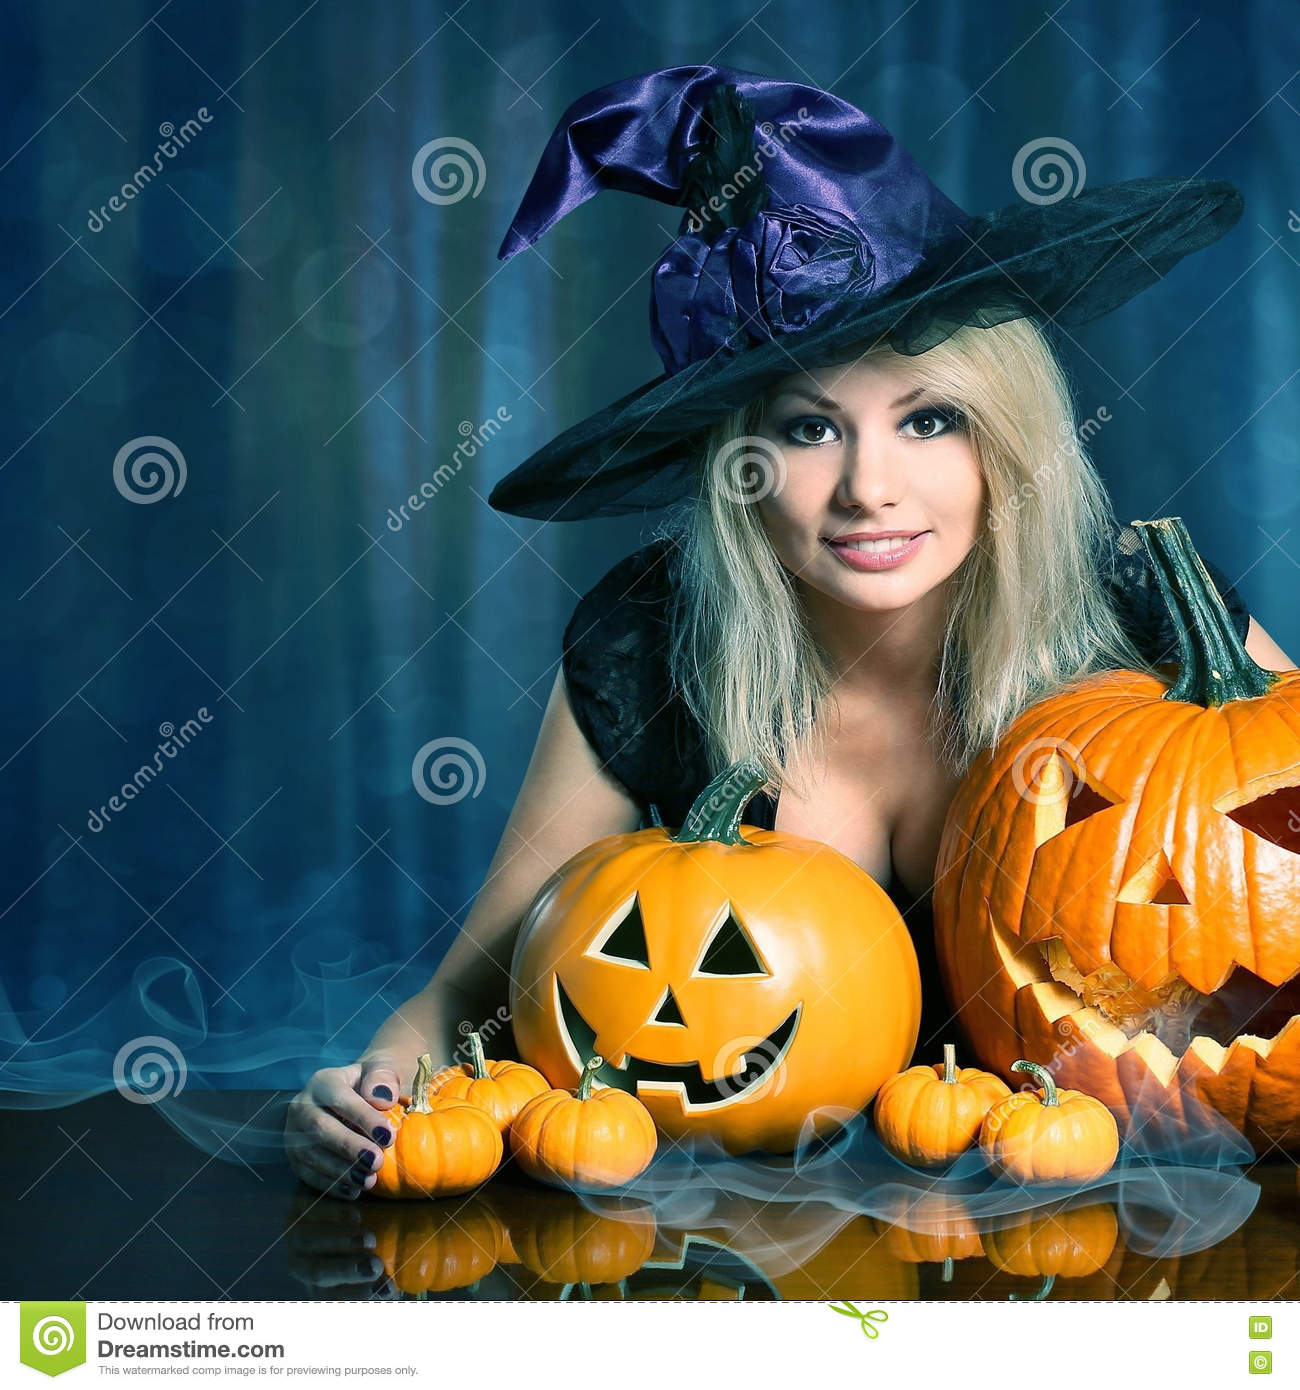 Witch with Halloween Pumpkins